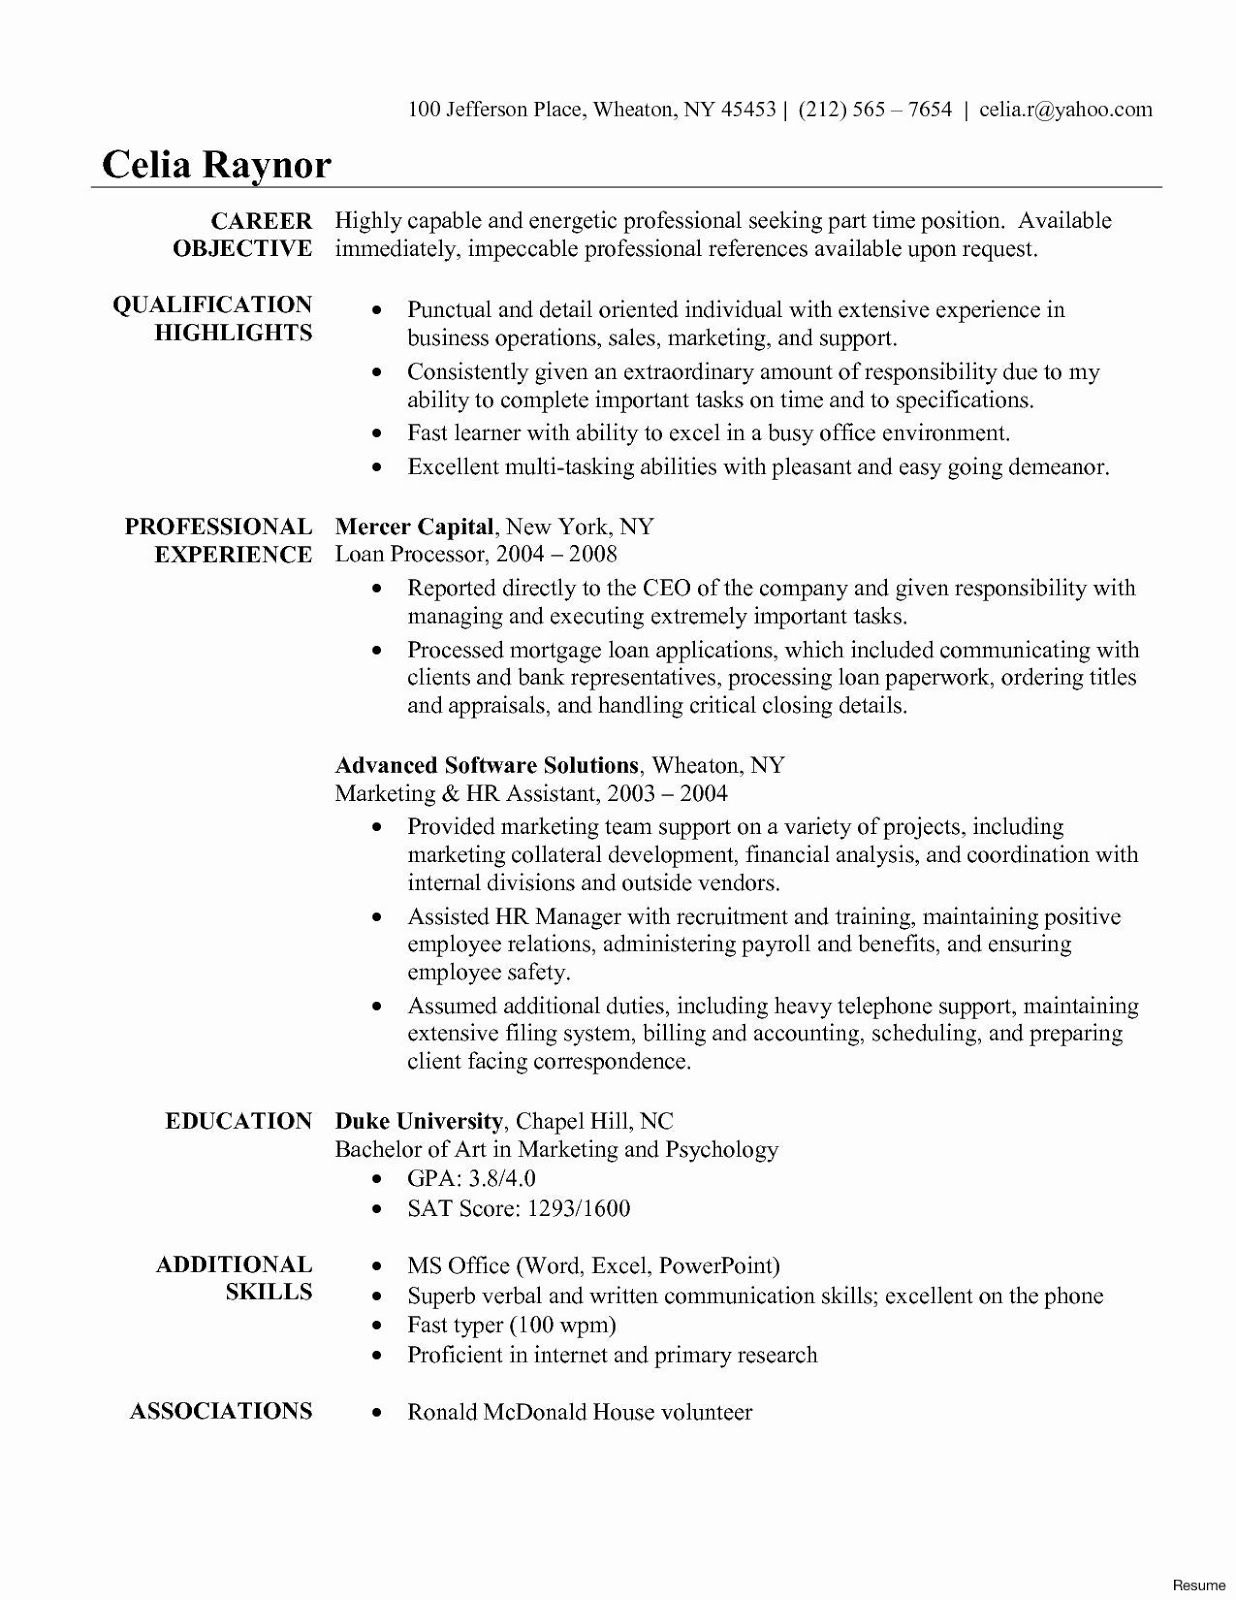 bank resume template for freshers world te administrative assistant objective examples Resume Freshersworld Resume Format